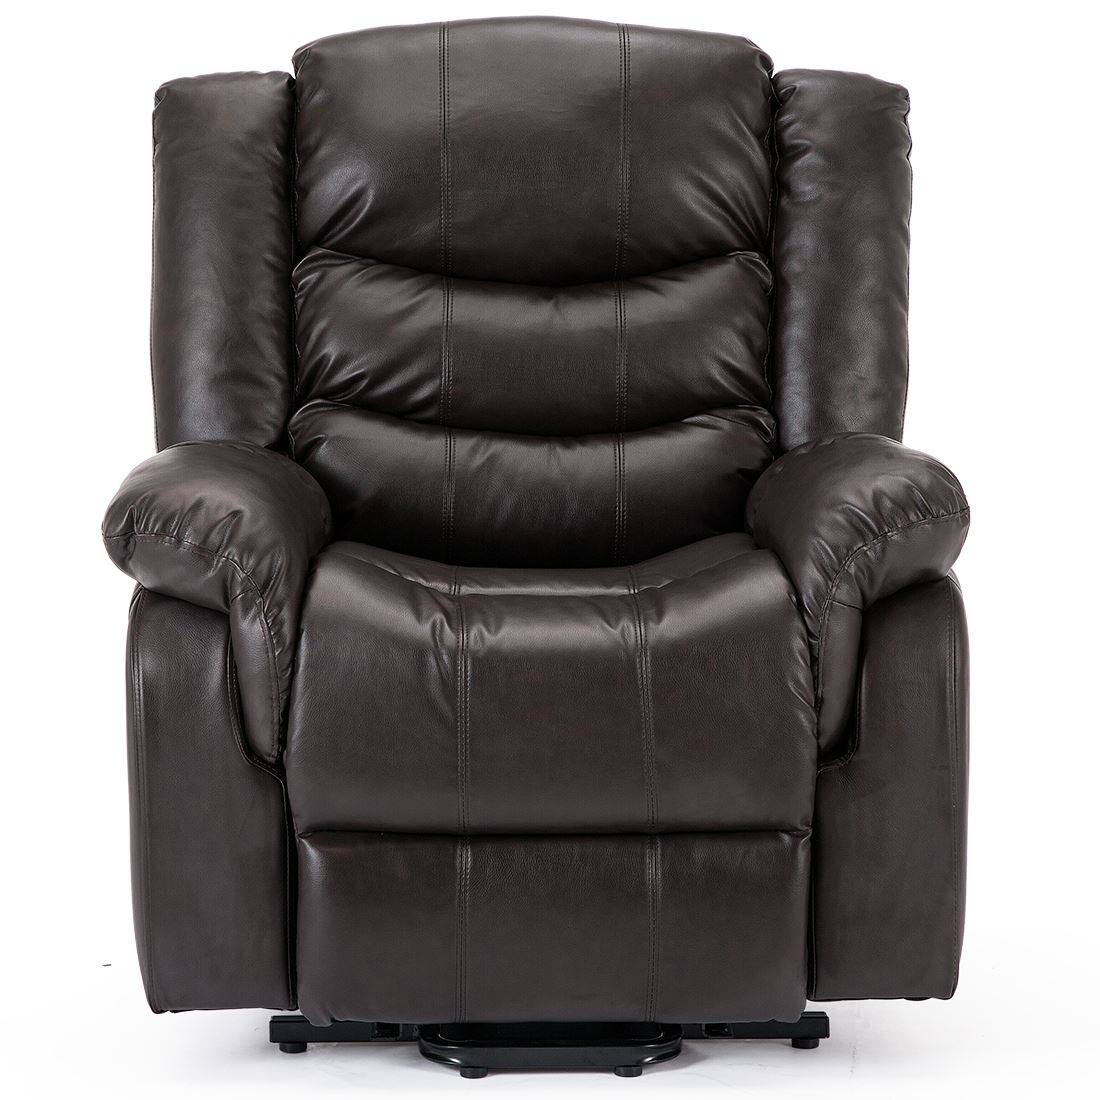 Real Leather Recliner Chairs Seattle Electric Rise Real Leather Recliner Armchair Sofa